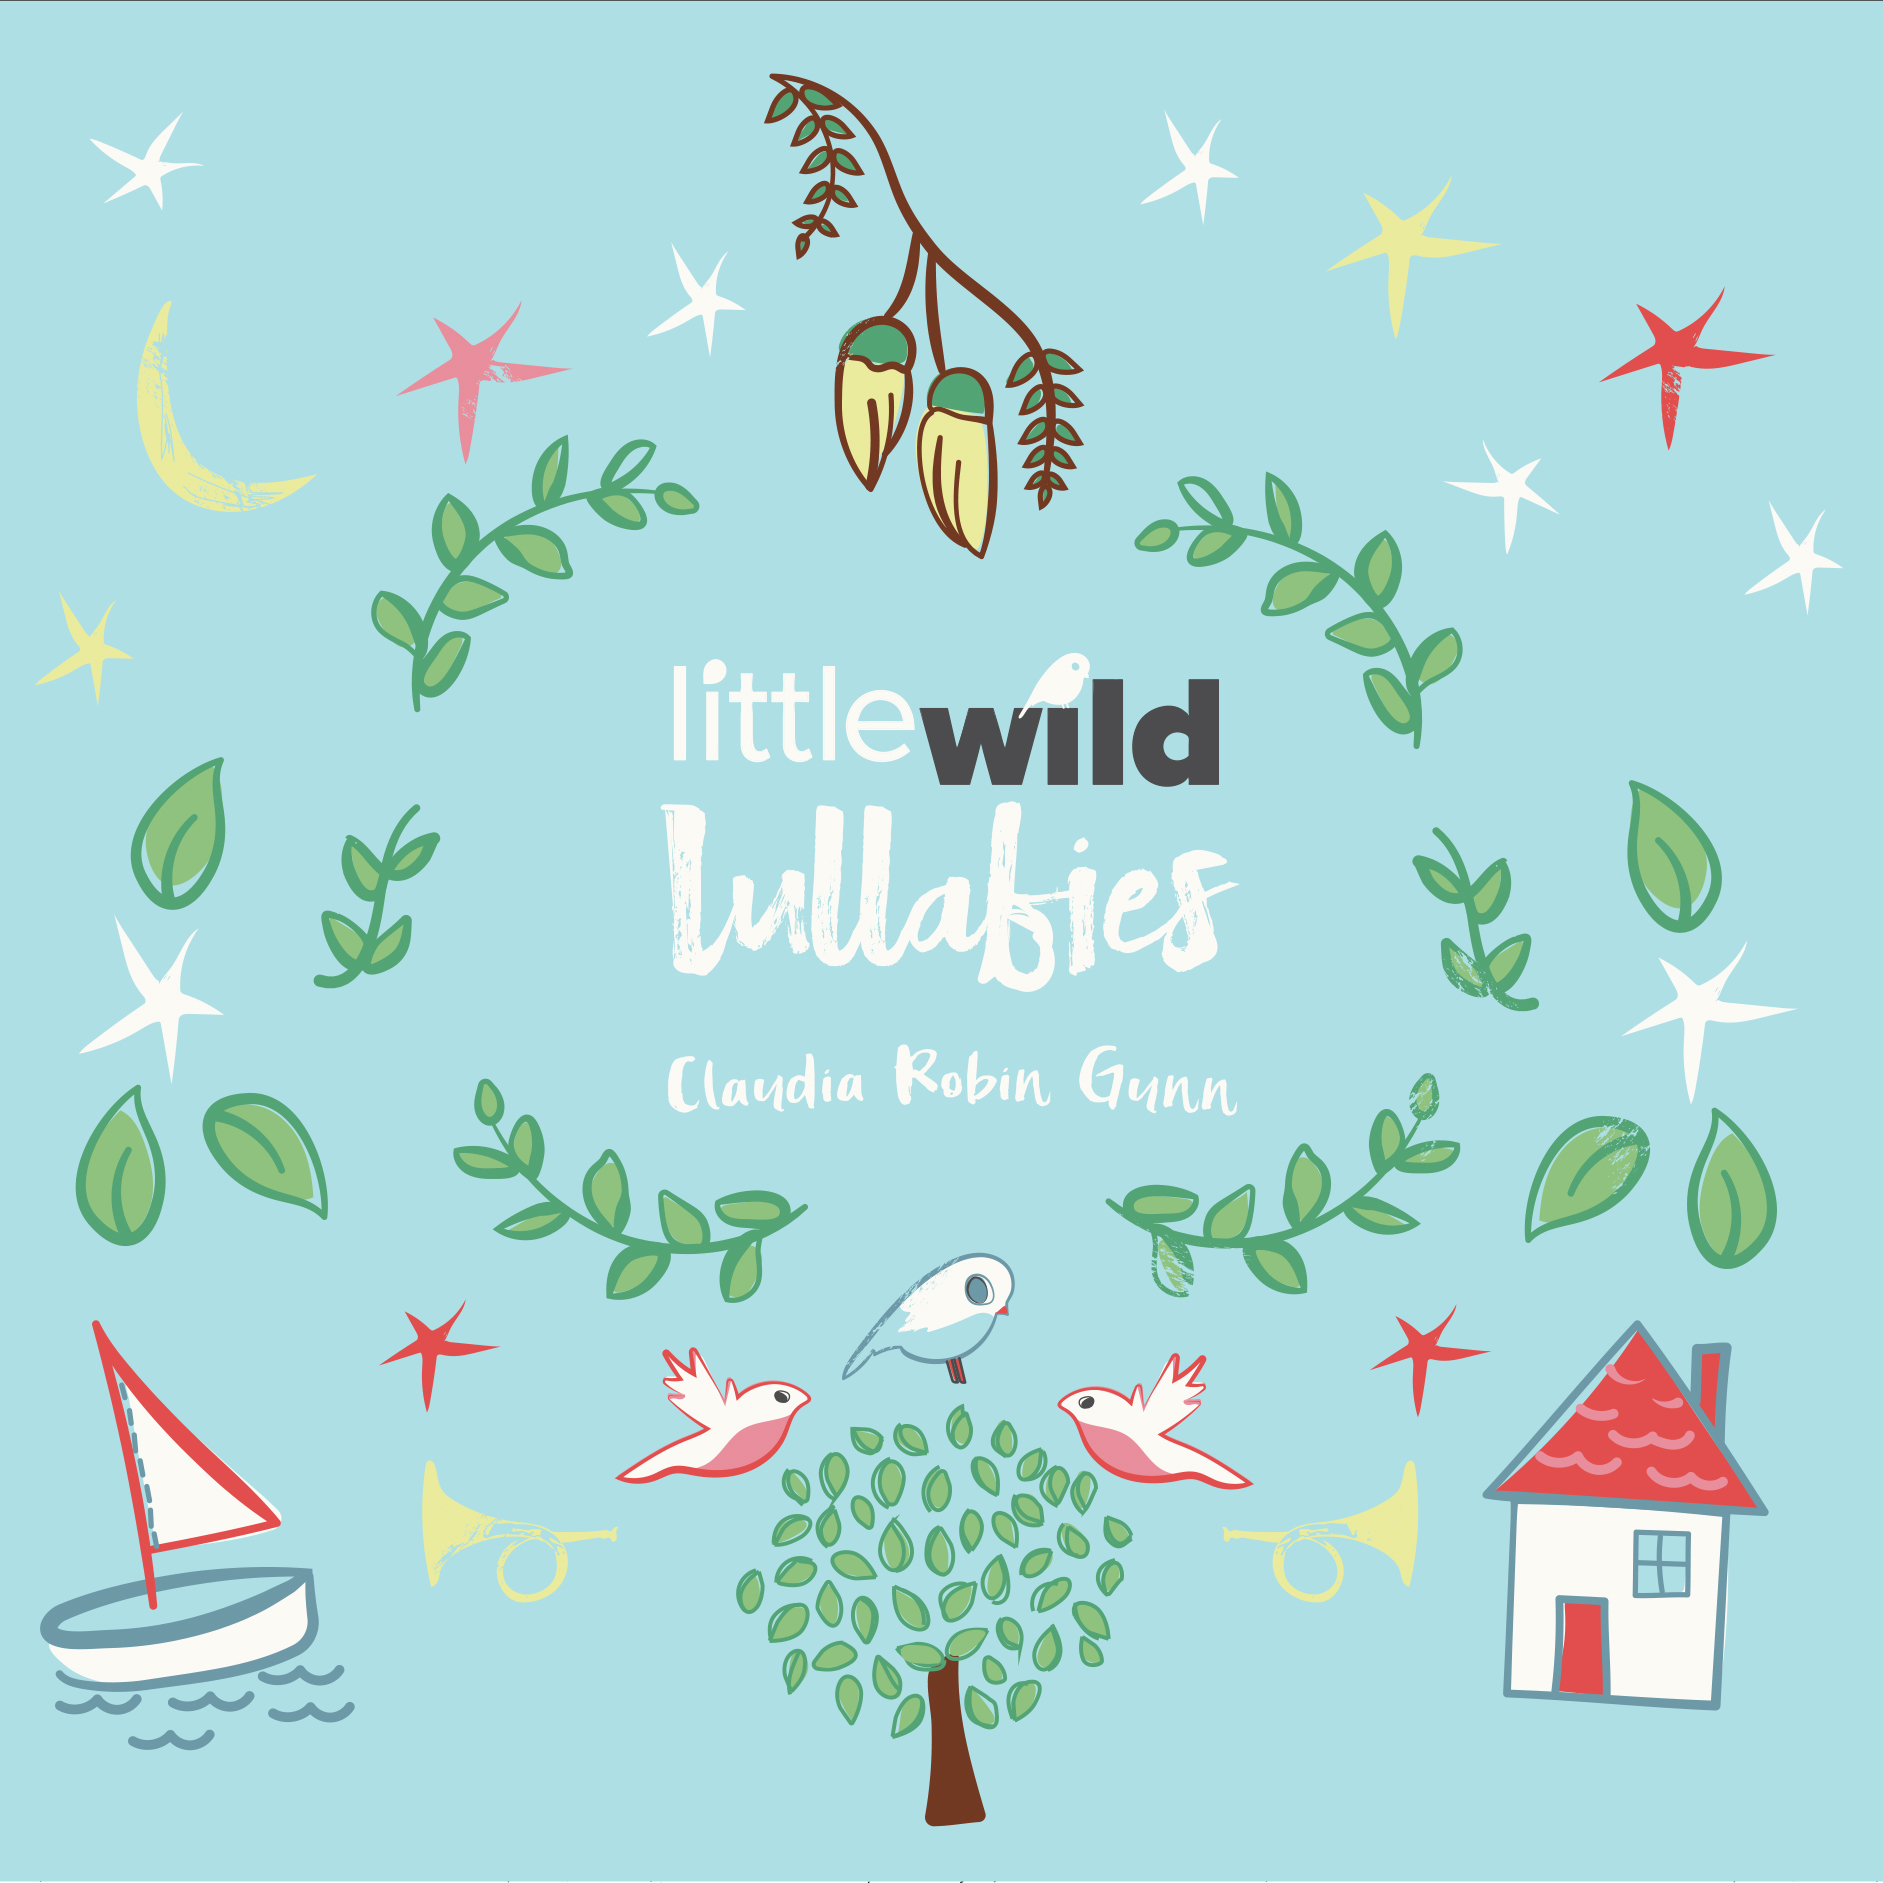 Little Wild Lullabies - Listen on Spotify!